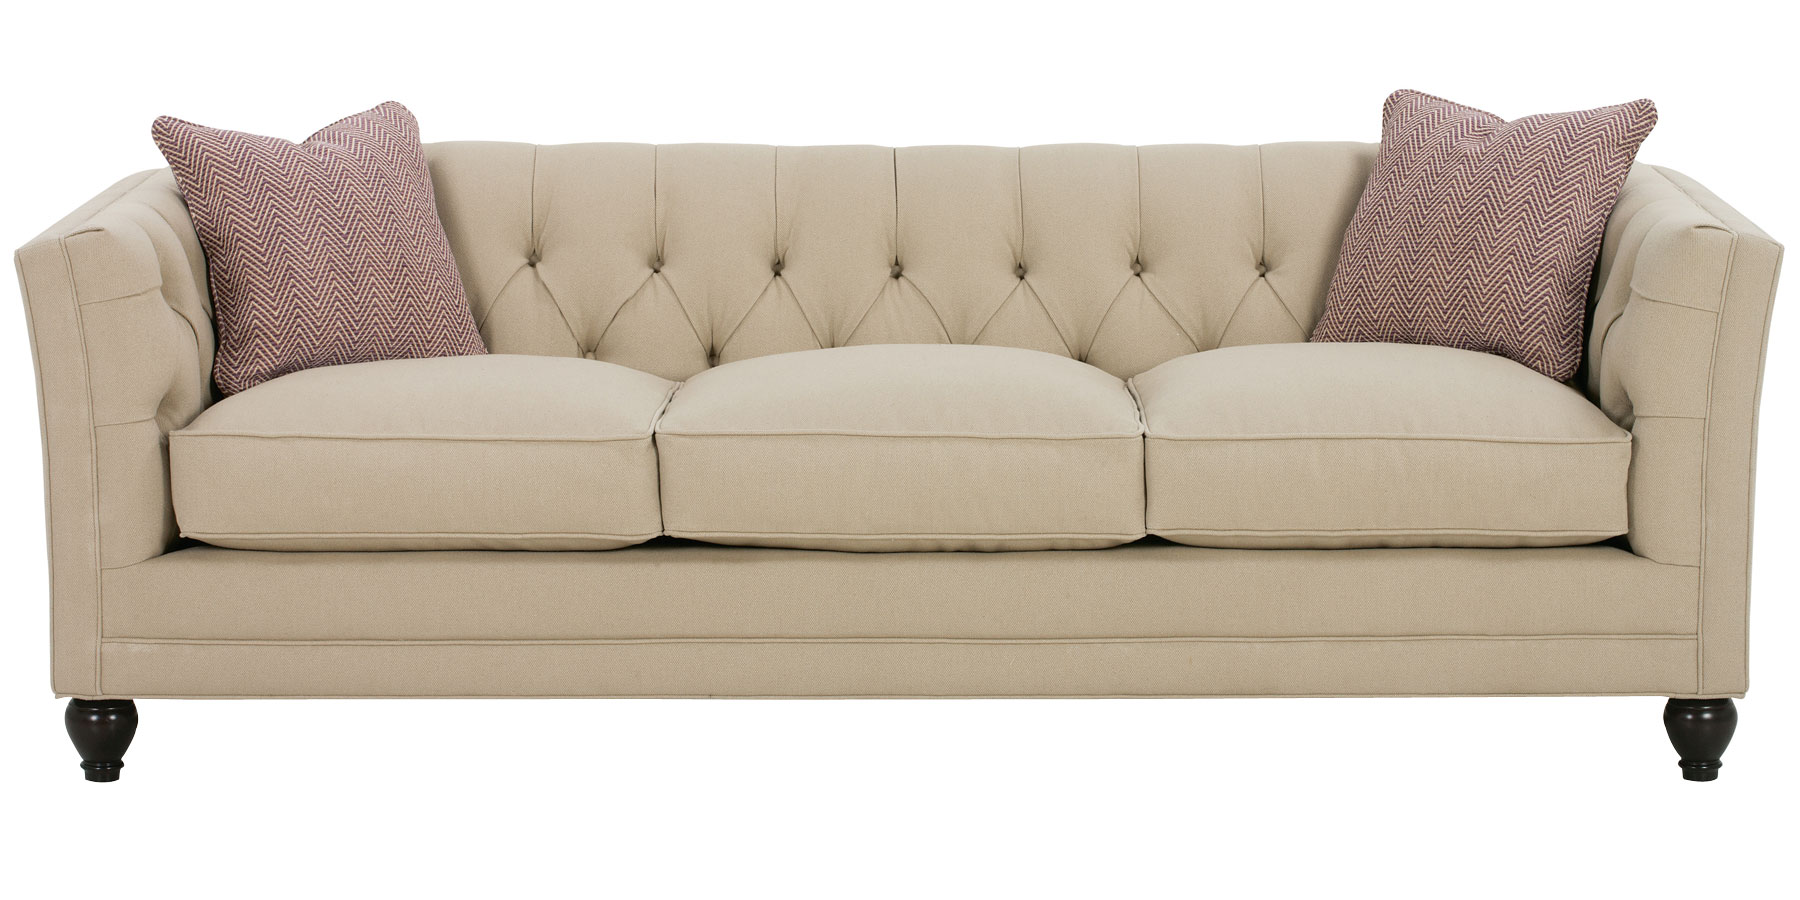 Sofa Style apartment furniture | studio size furniture | small sofa couch